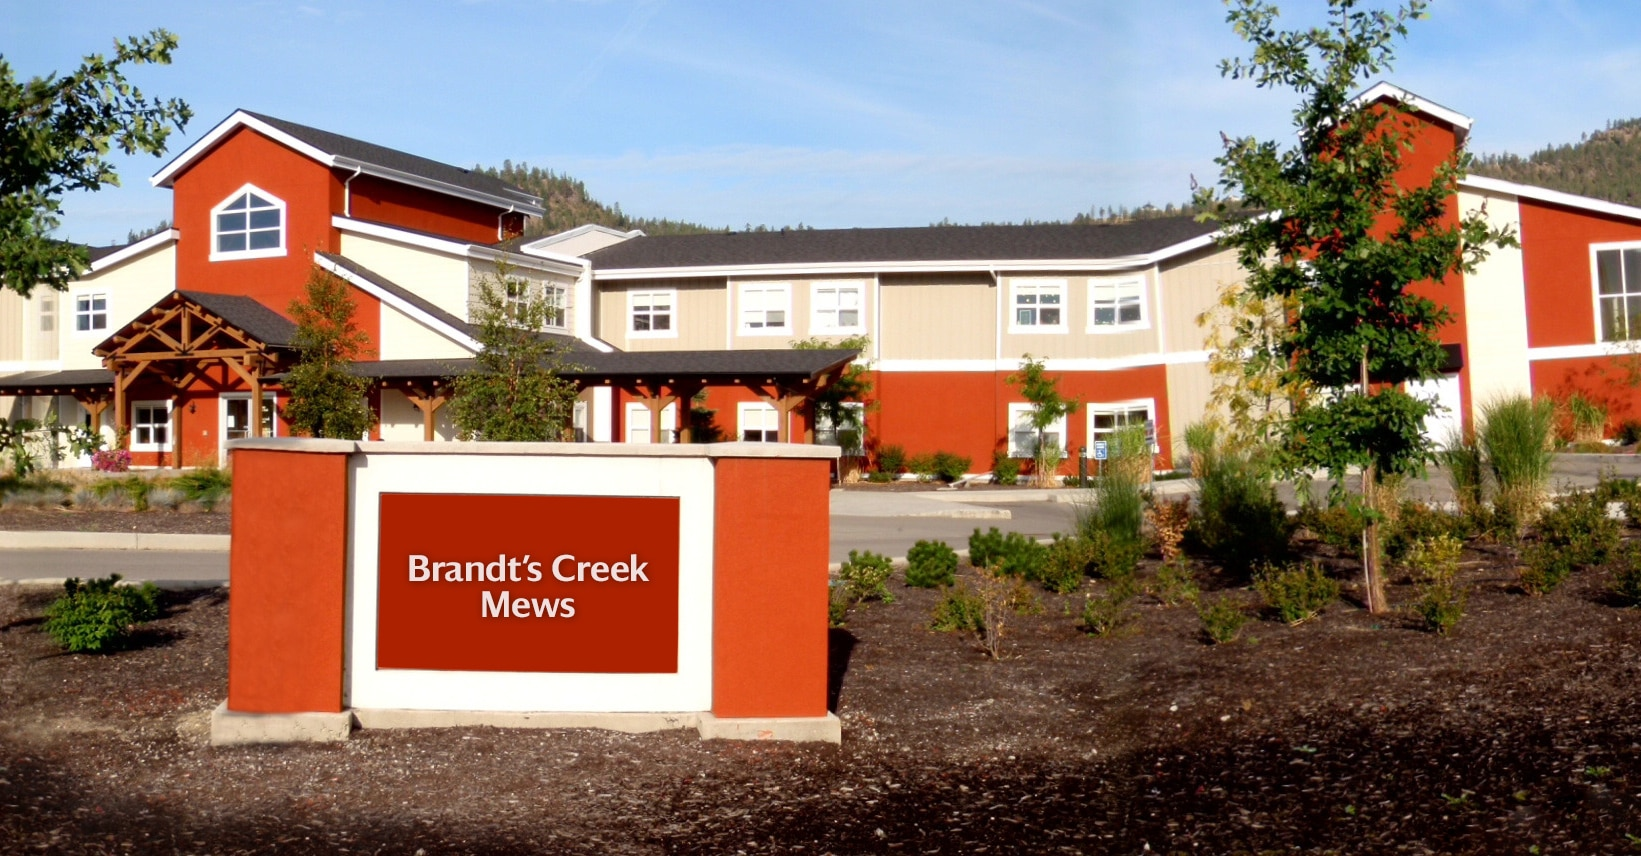 Brandts Creek Mews